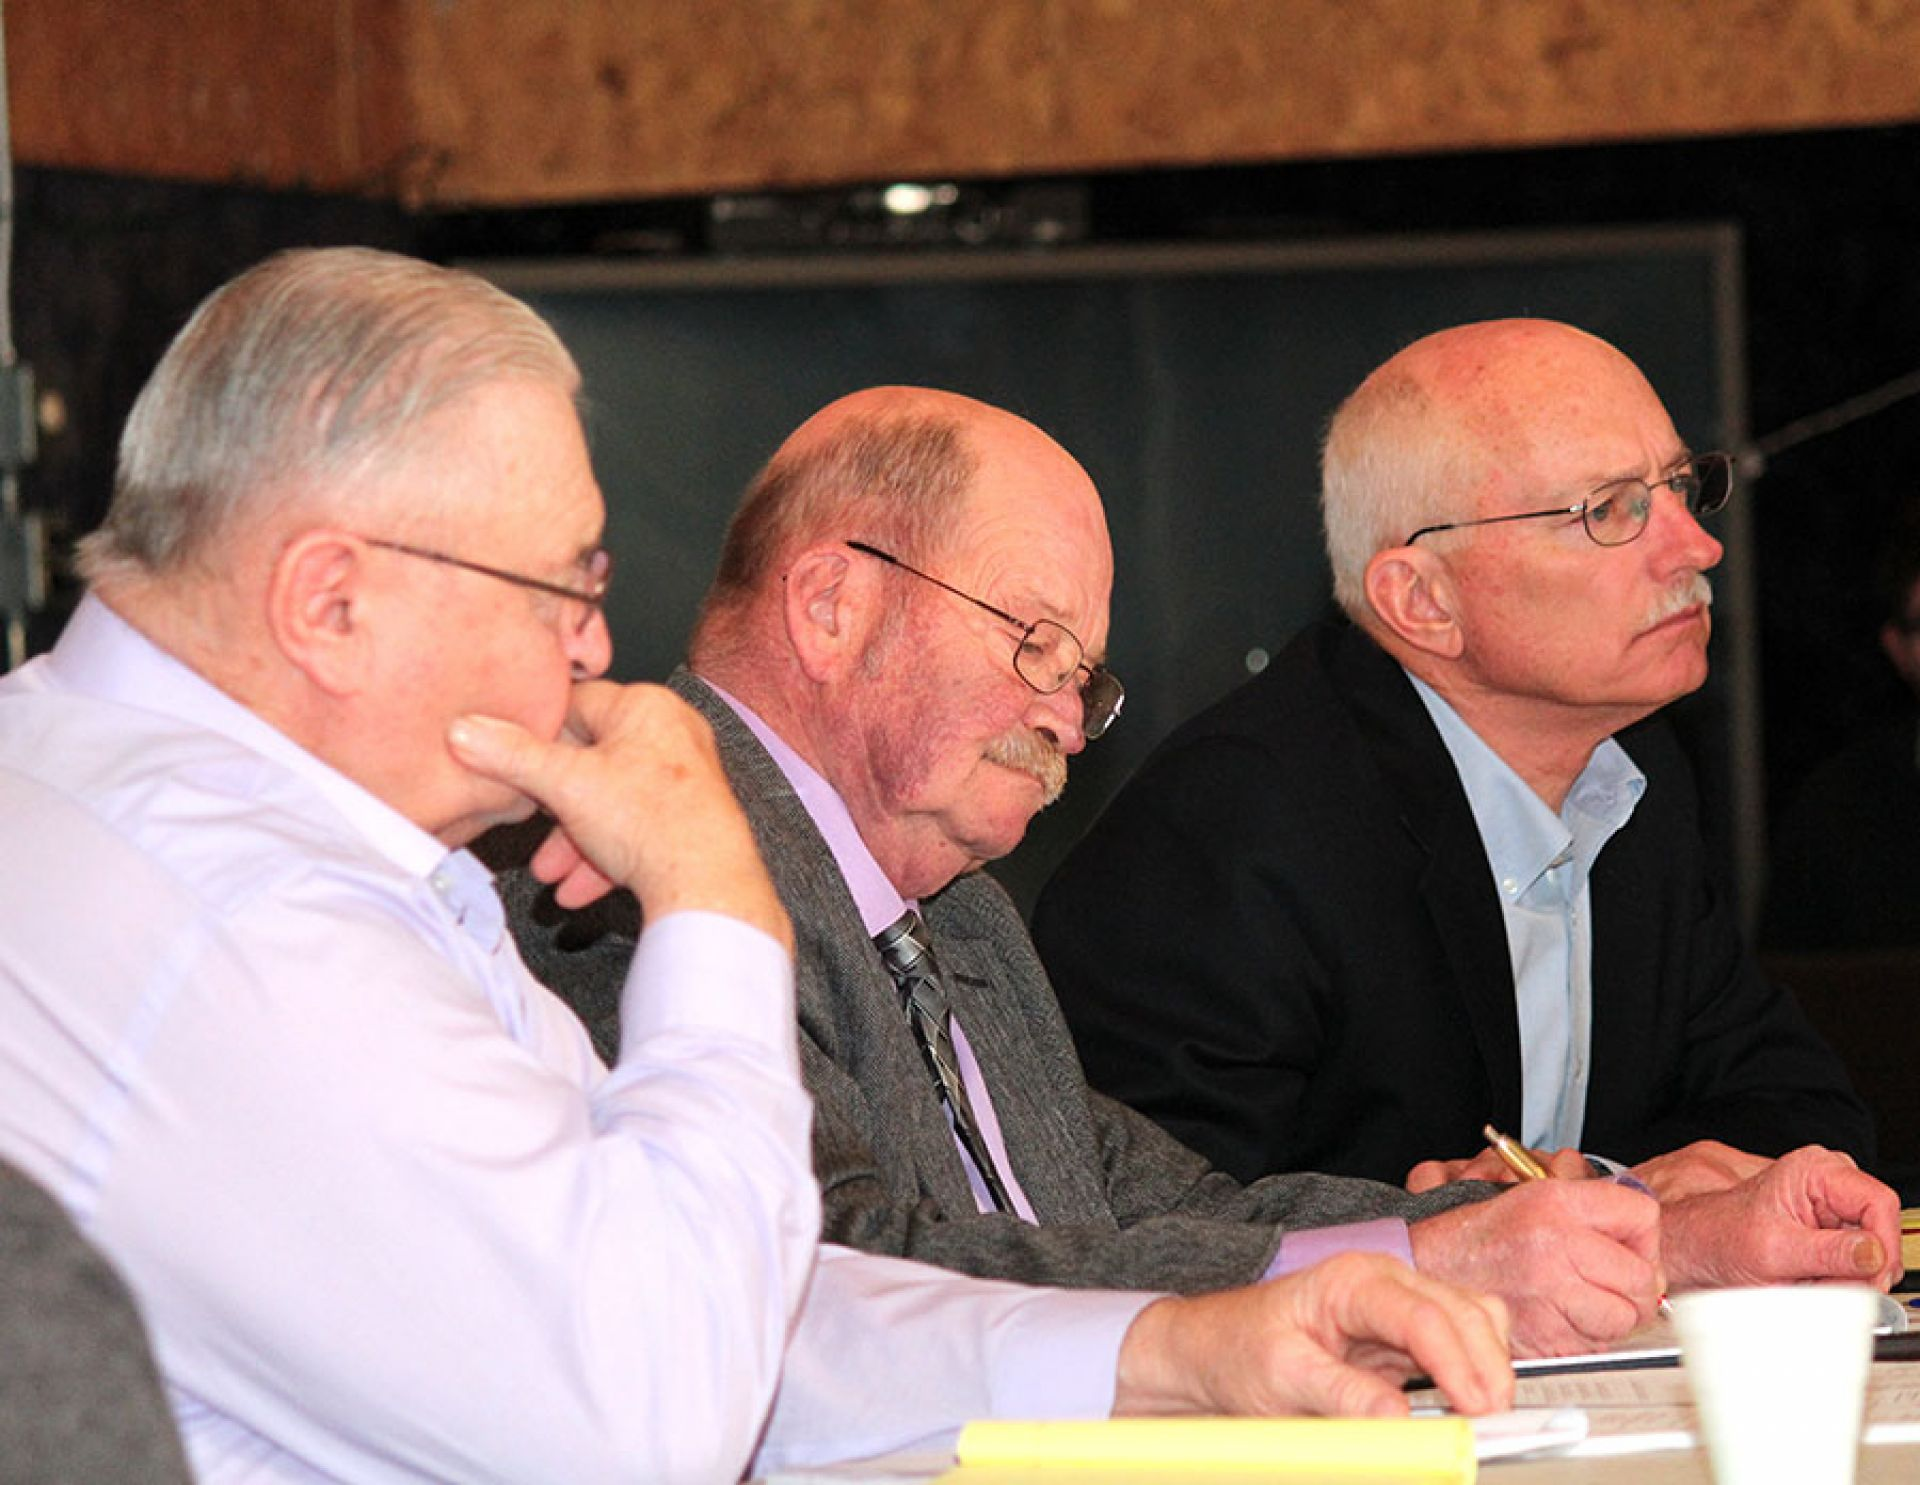 The Sheridan County Commissioners hear public testimony regarding the renewal of the Whiteclay liquor licenses Thursday, Jan. 5 at the Rushville American Legion.